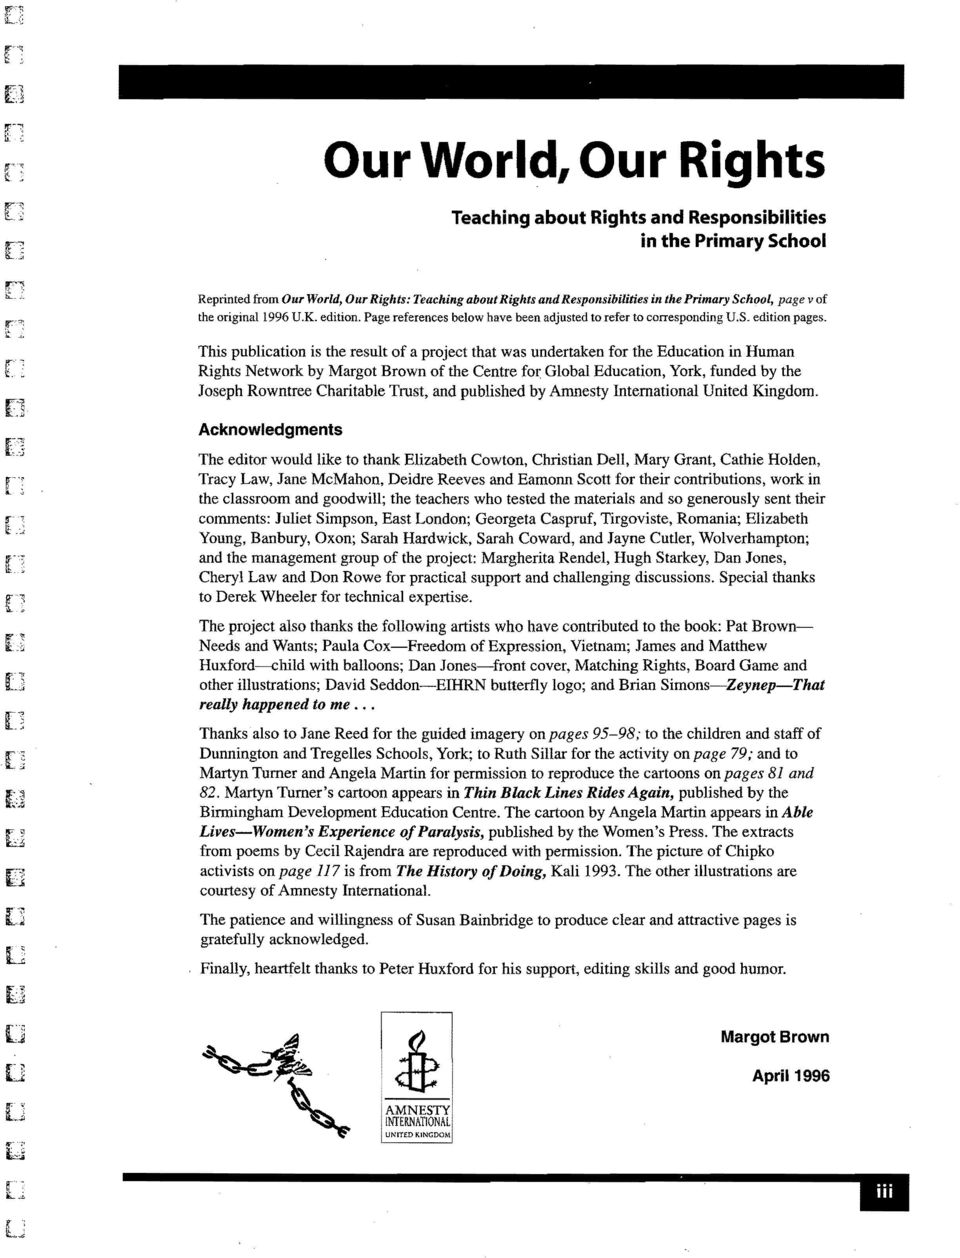 This publication is the result of a project that was undertaken for the Education in Human Rights Network by Margot Brown of the Centre fo~ Global Education, York, funded by the Joseph Rowntree